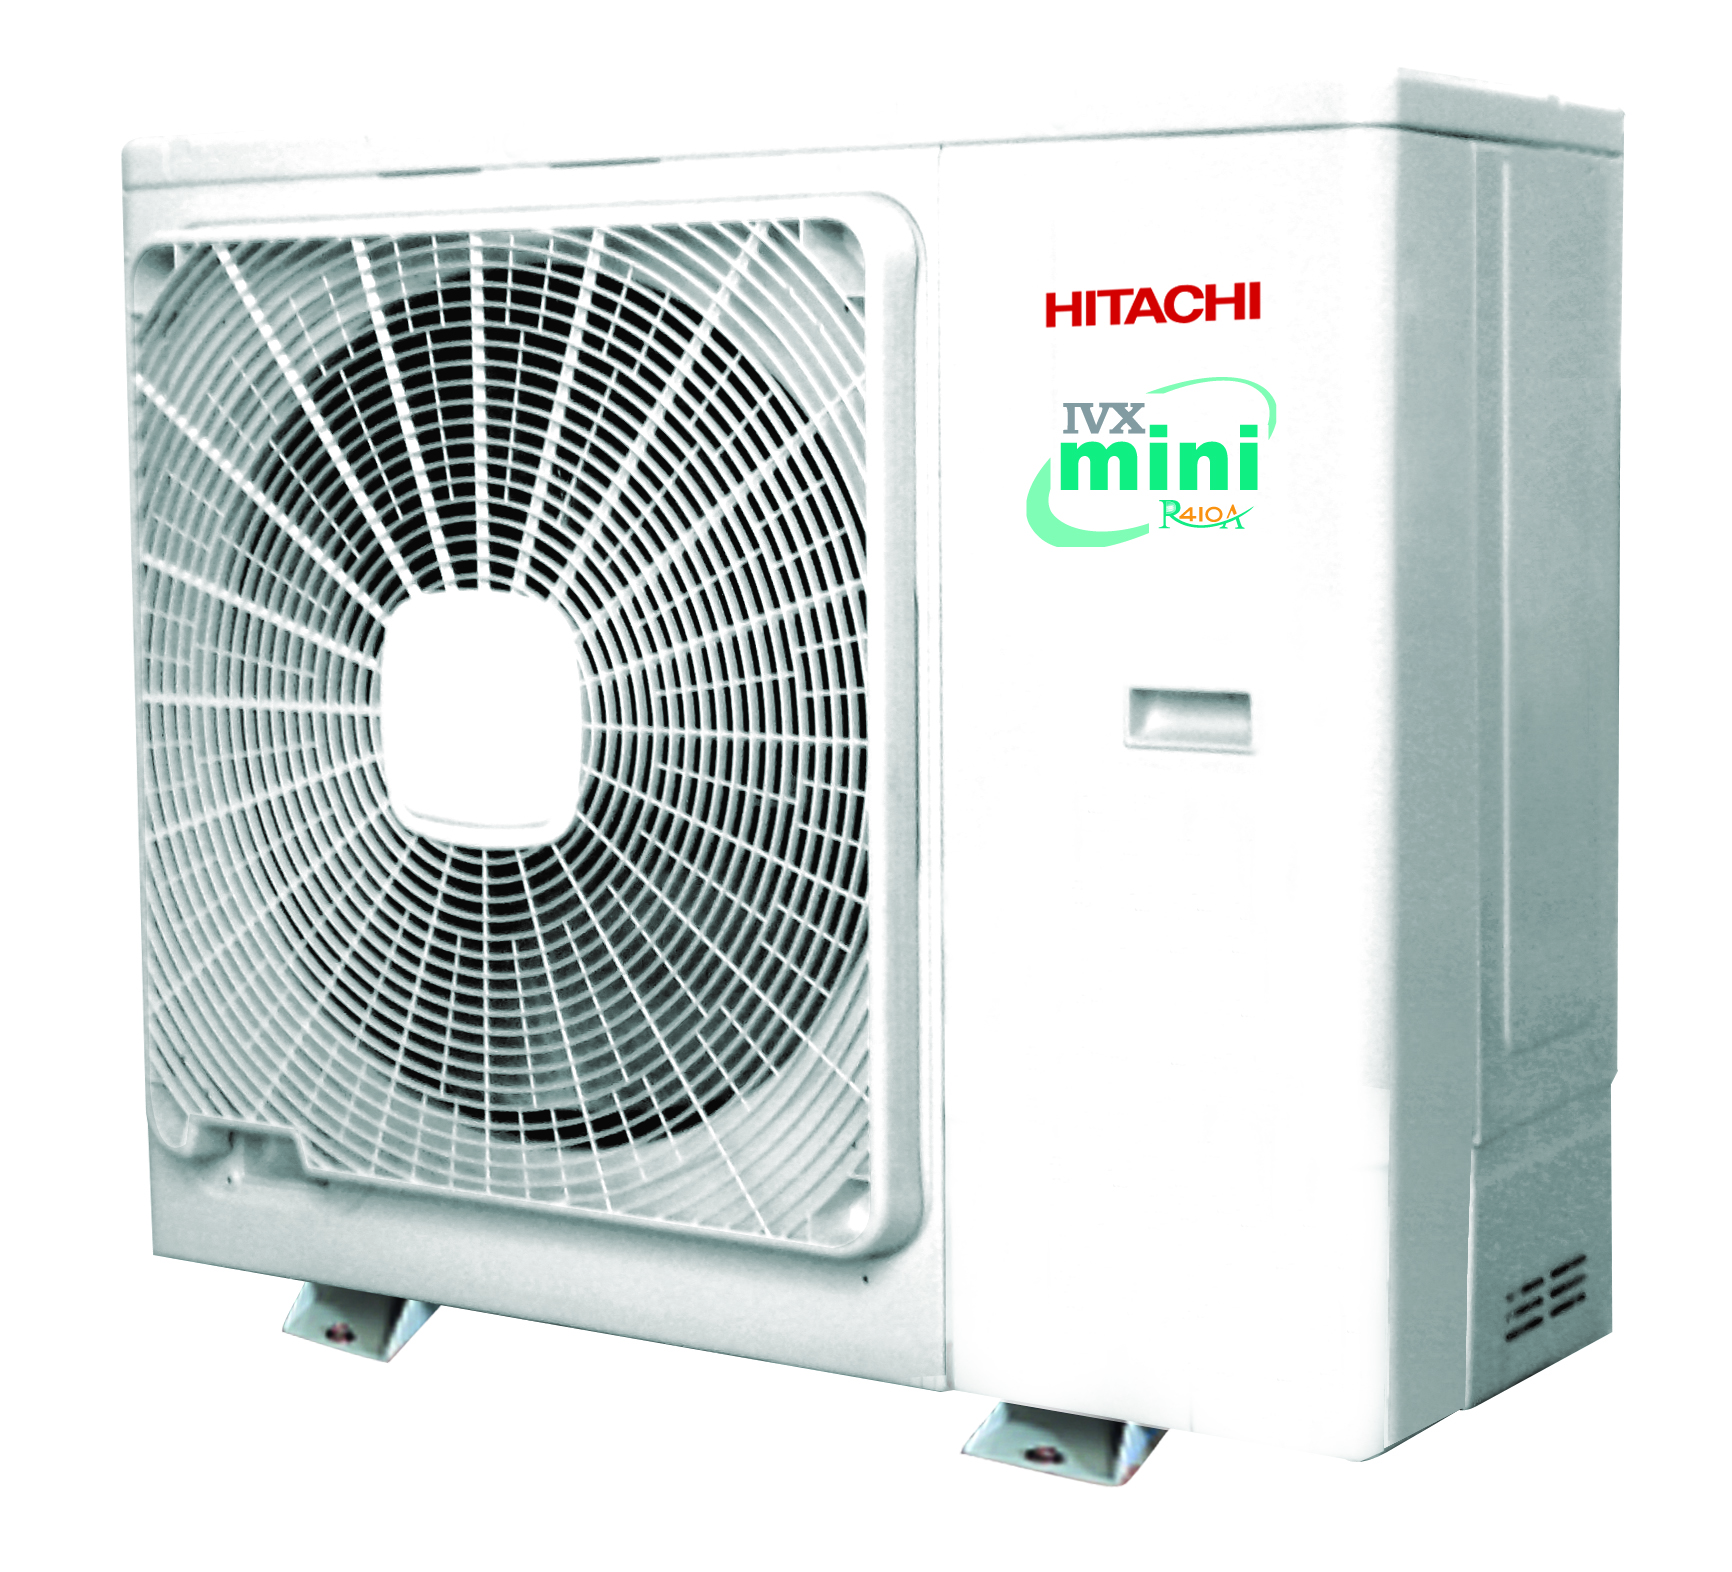 HITACHI VRF R410A Outdoor IVX MINI 3HP-5HP